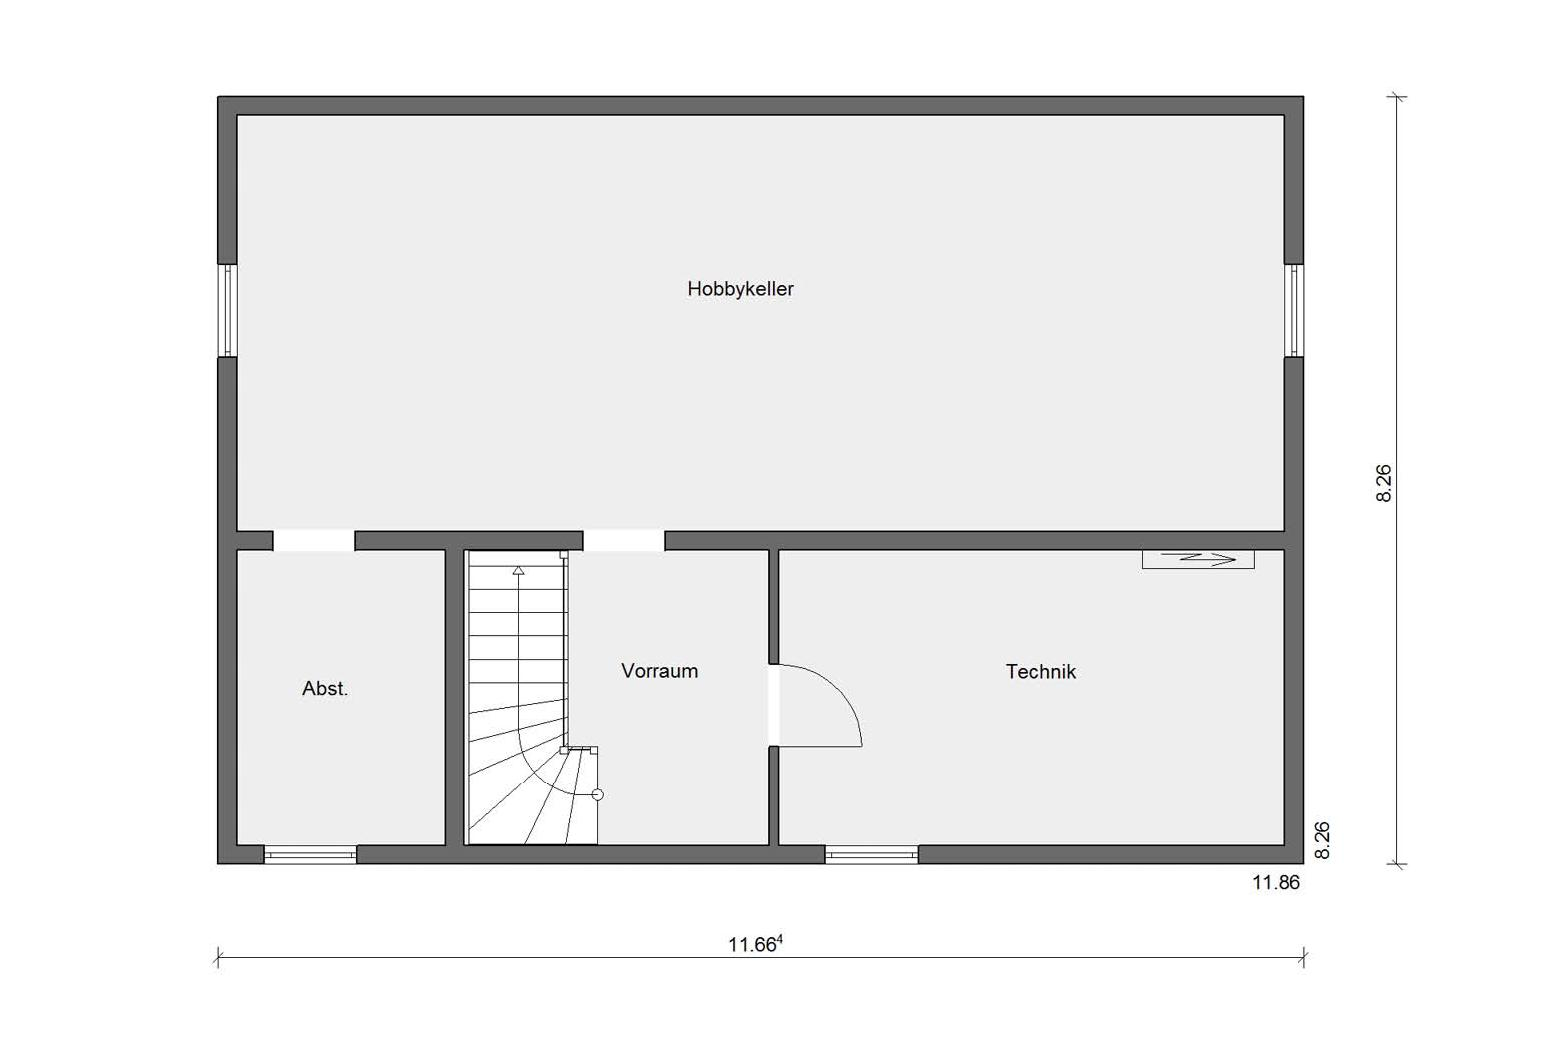 Floor plan basement E 20-165.4 prefab house modern